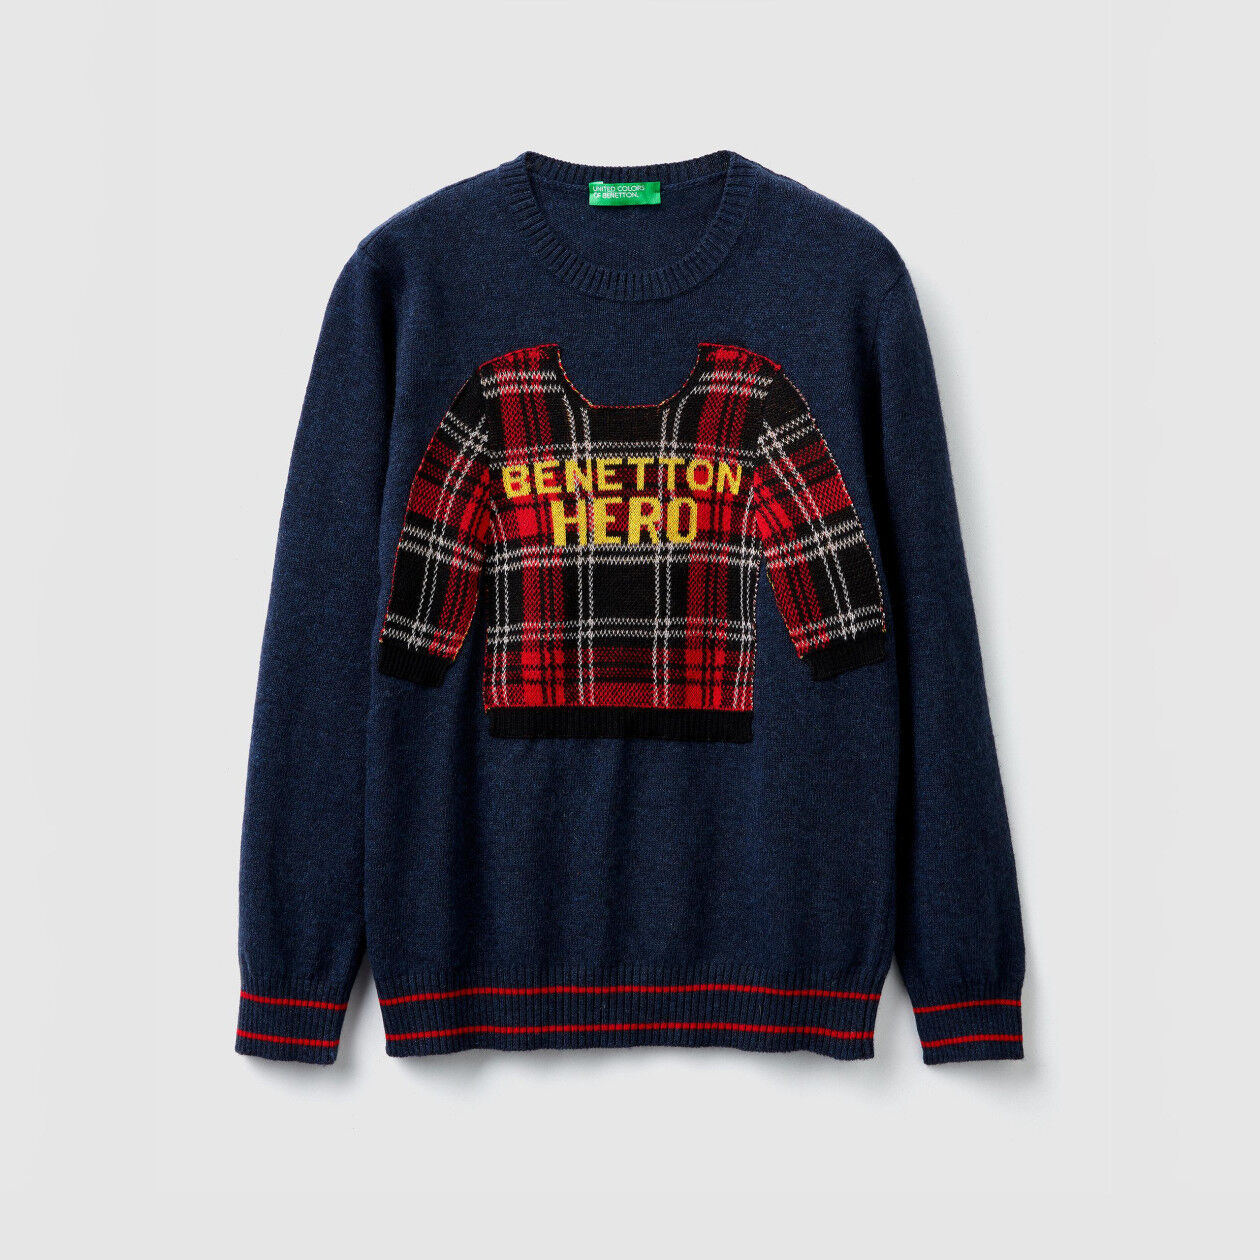 Sweater with patch and text